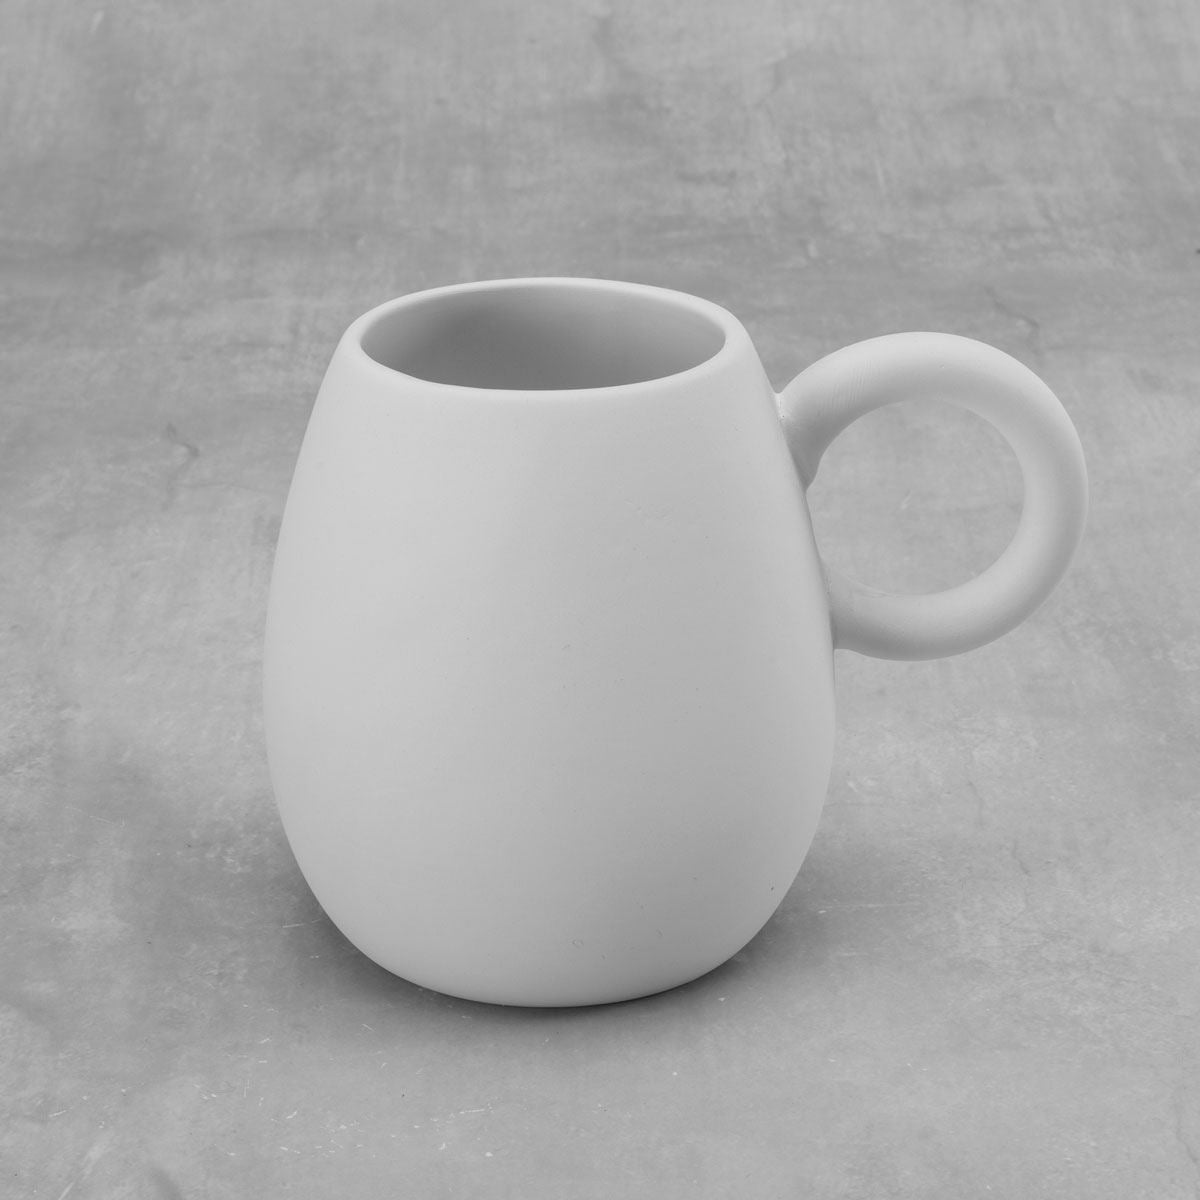 Duncan 38579 Bisque Little Loop Mug 16 oz.